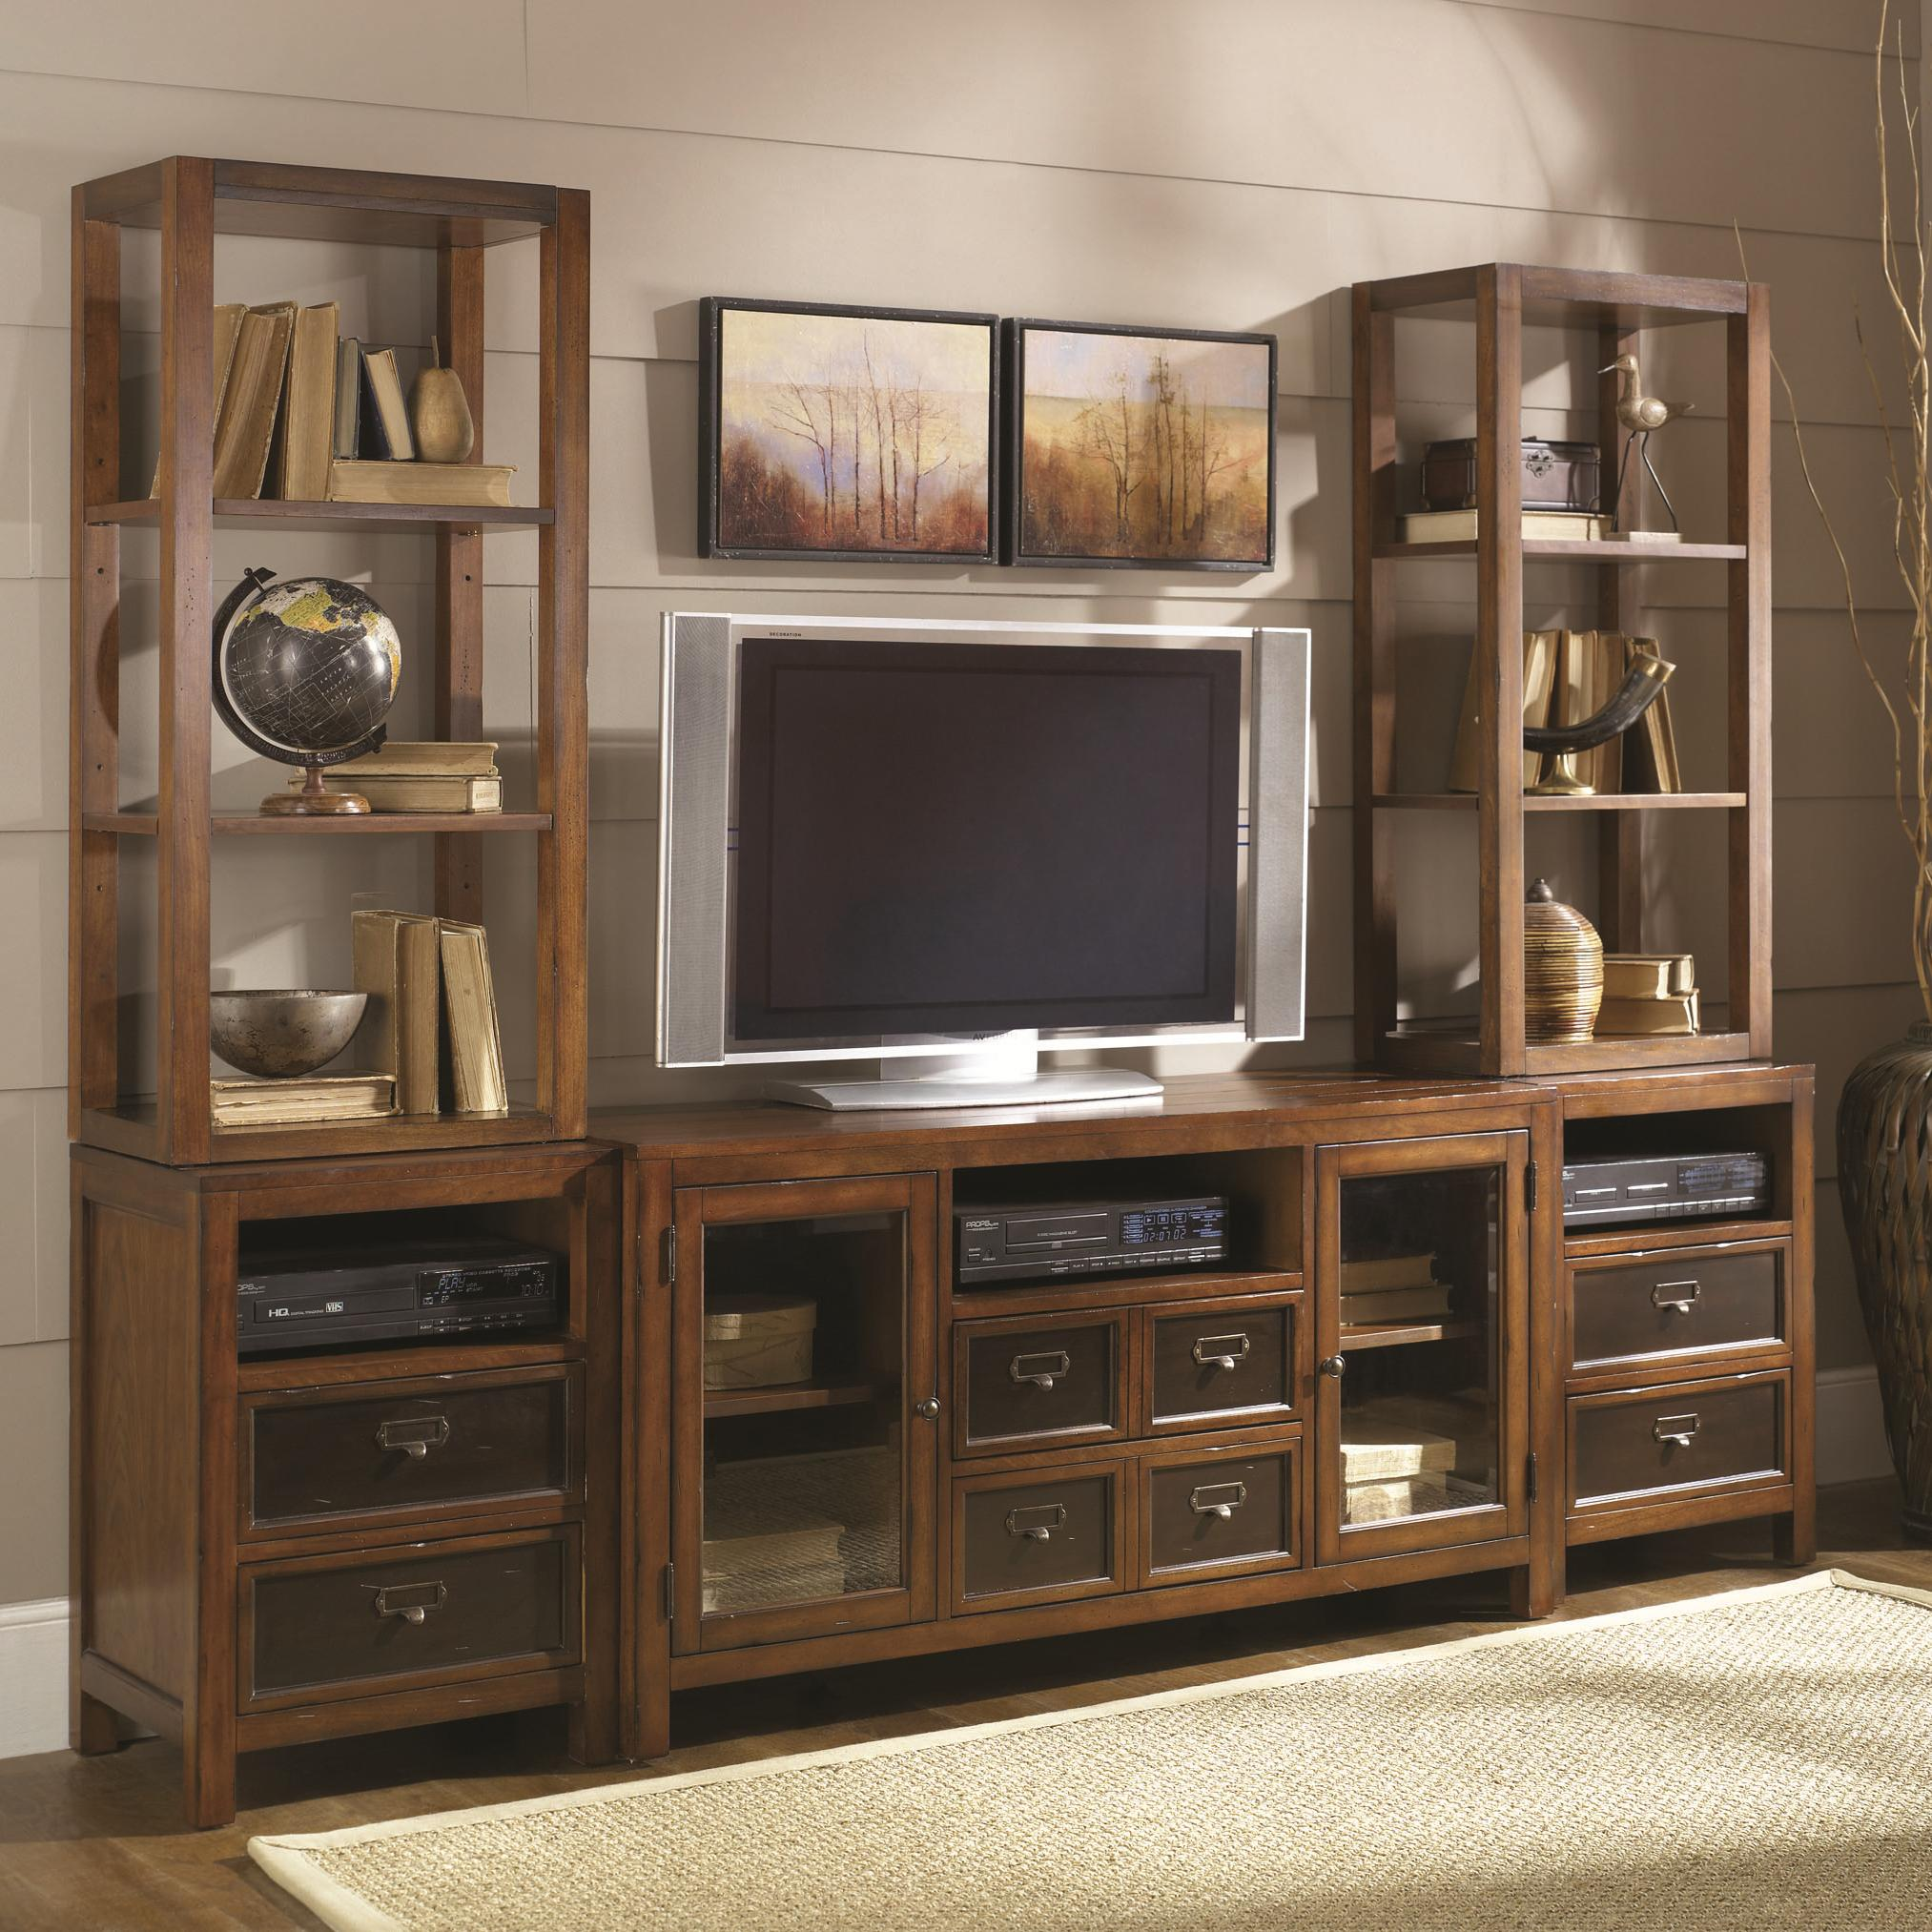 hammary mercantile six drawer two door entertainment wall unit with shelving storage display. Black Bedroom Furniture Sets. Home Design Ideas